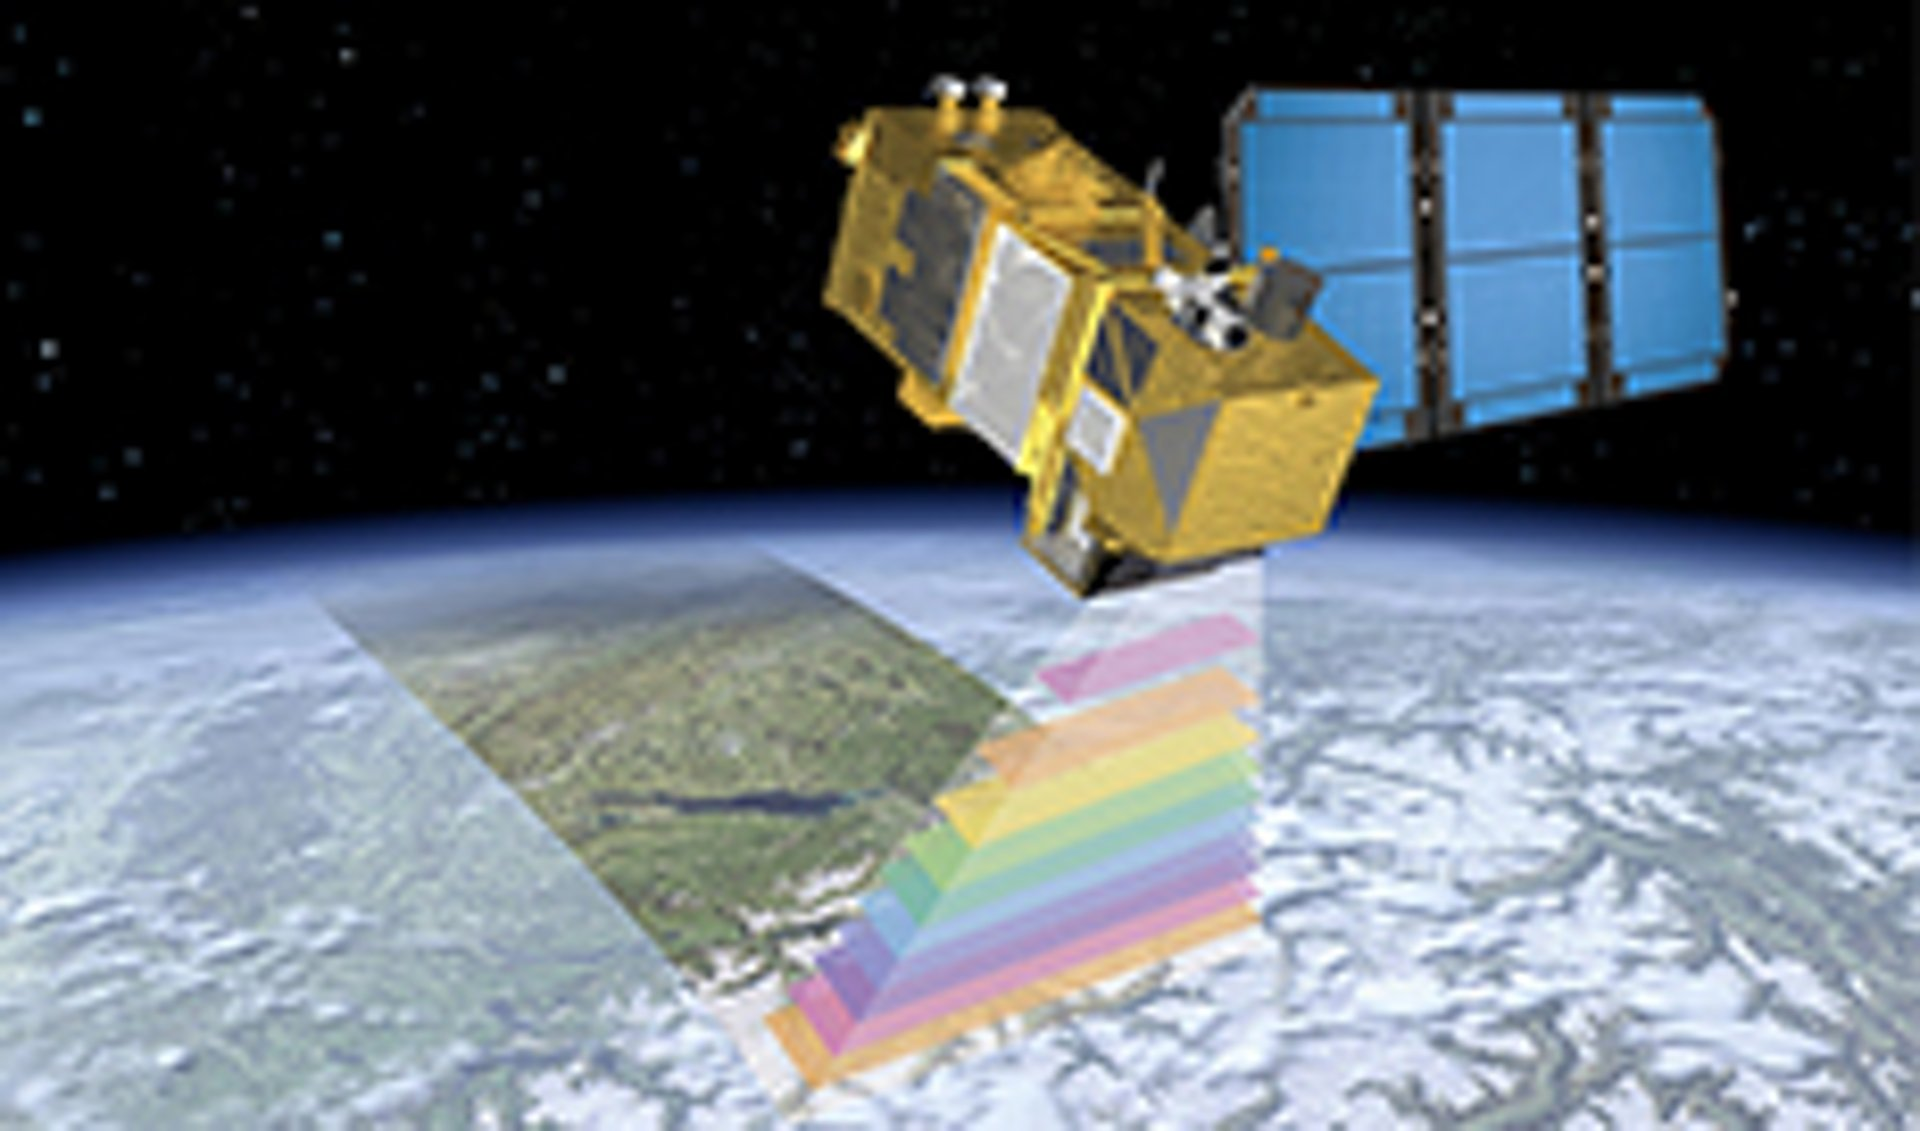 Sentinel-2A will map the Earth's entire landmass as part of the European Copernicus global monitoring programme